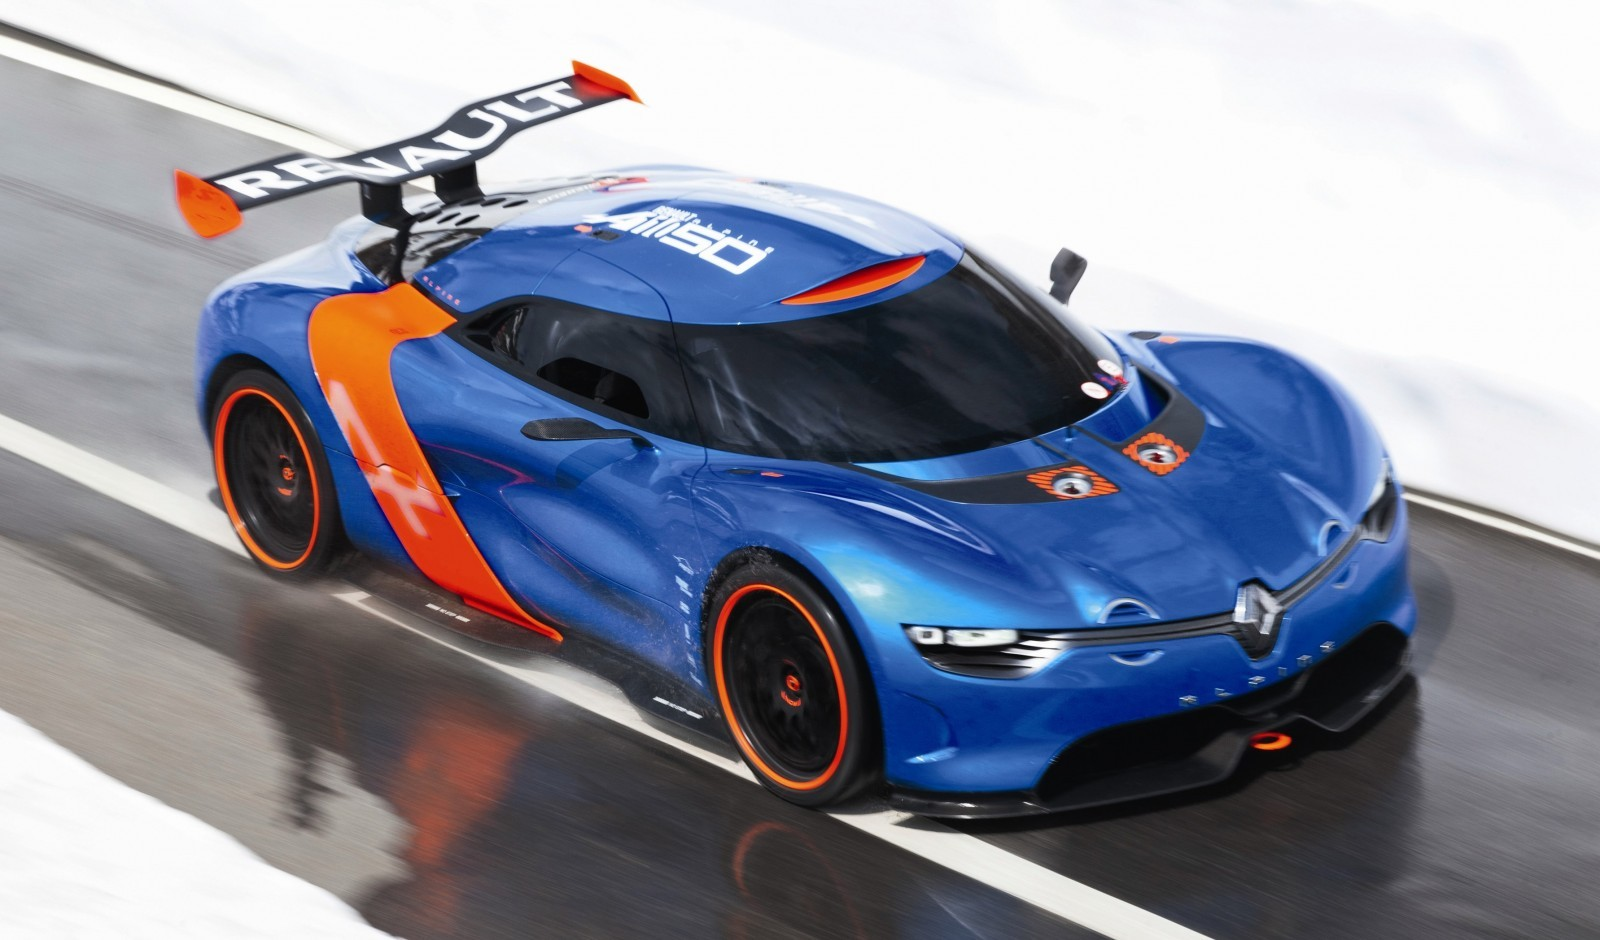 Concept Flashback - 2012 Renault Alpine A110-50 A Blend of M64 and A110 Berlinette 87